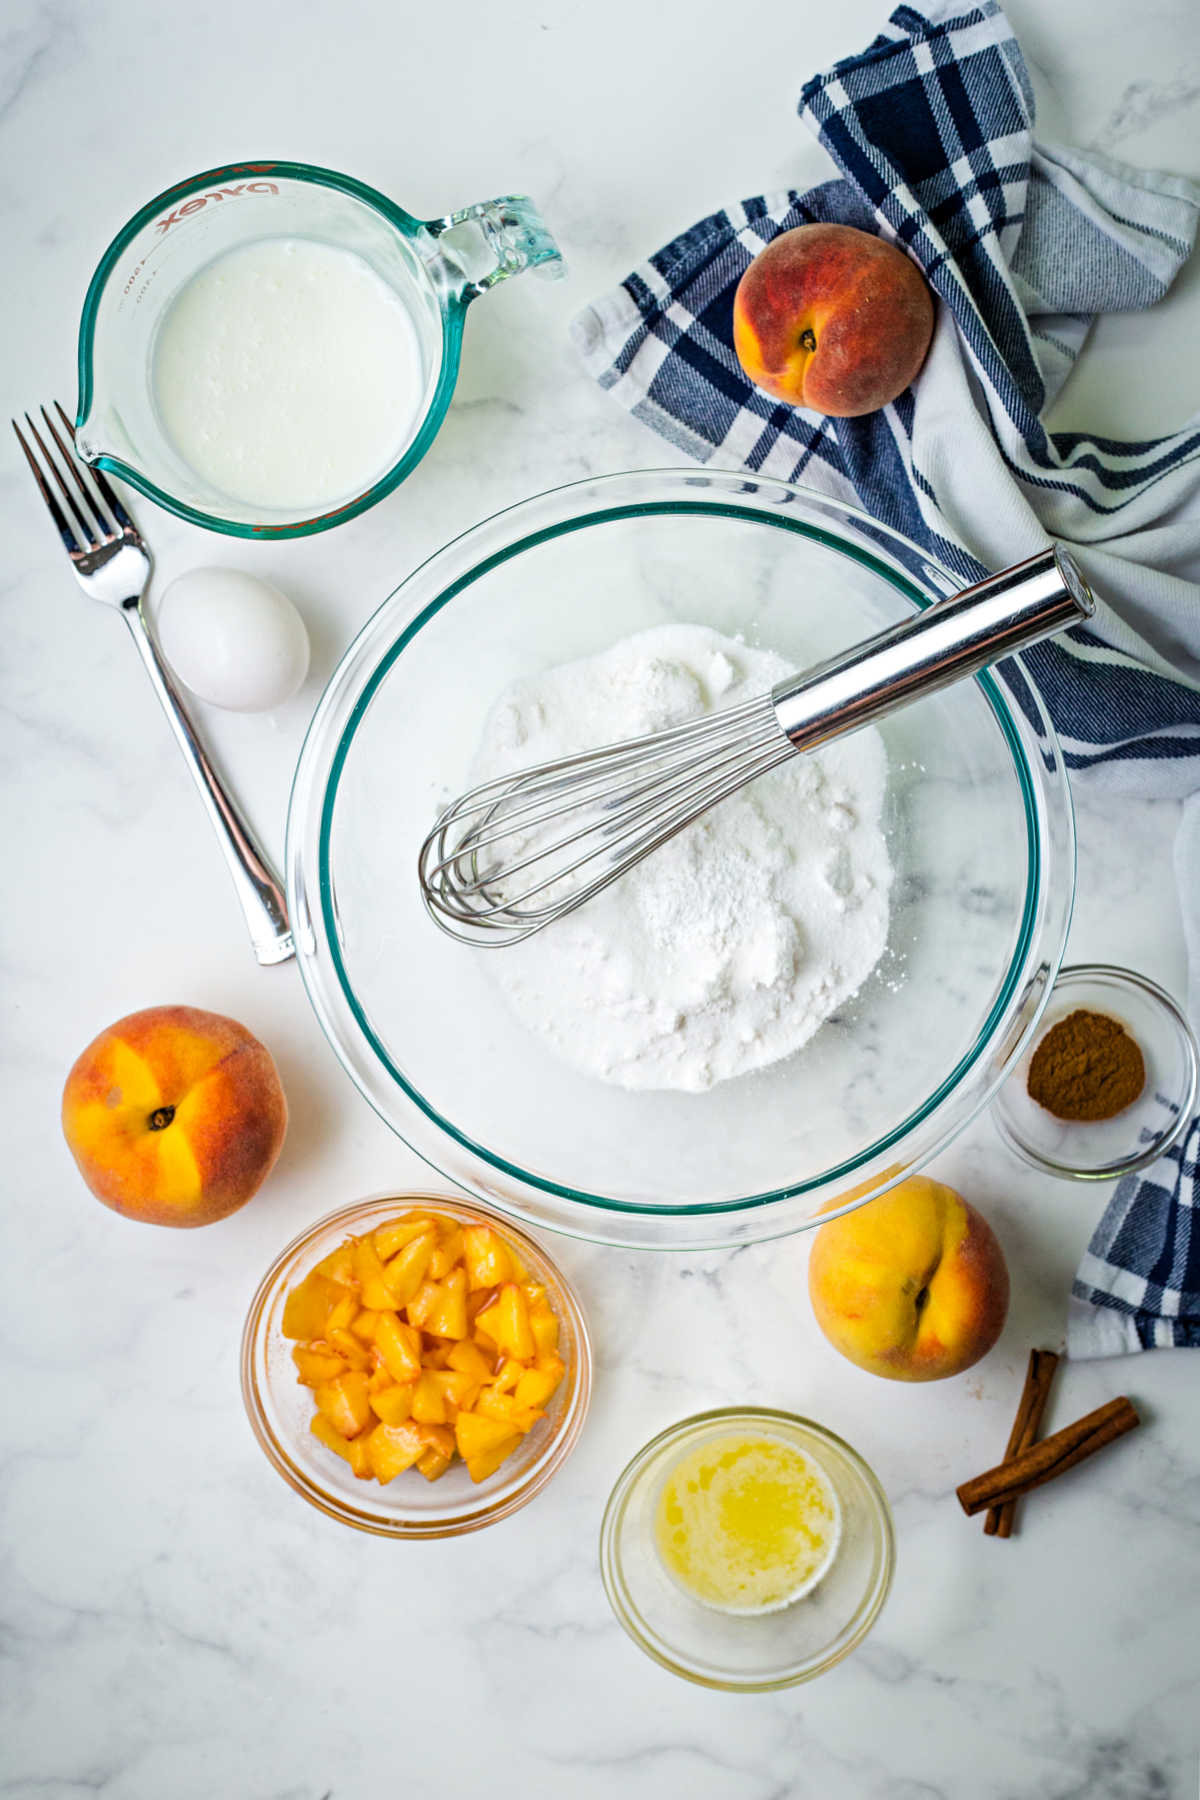 ingredients for peach pancakes on a kitchen counter: flour, diced peaches, melted butter, egg, and buttermilk.